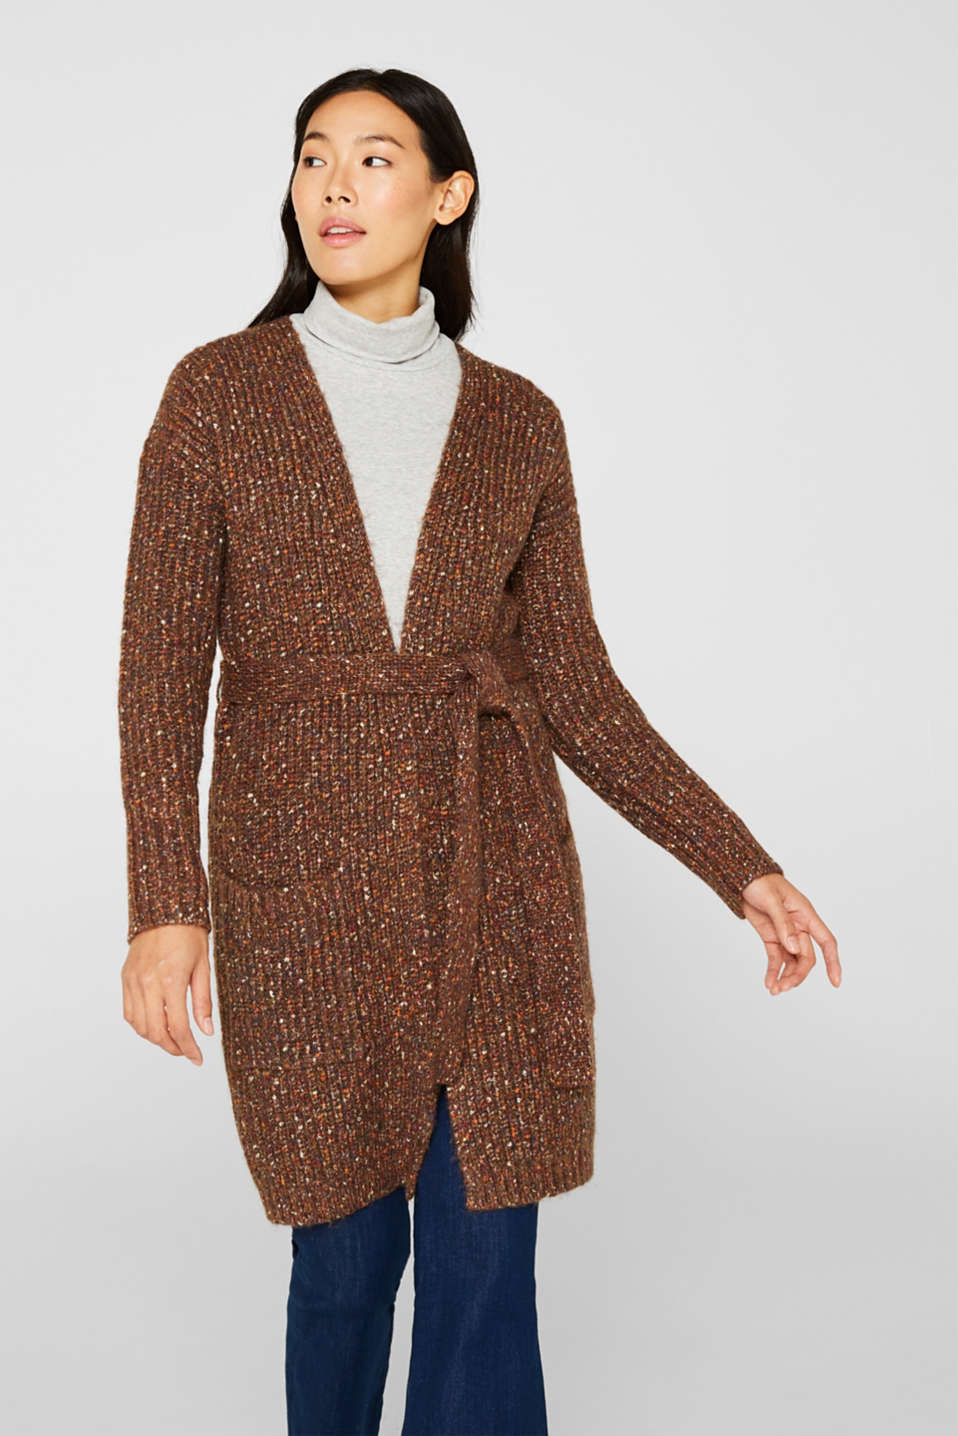 Esprit - Multi-colour chunky-knit cardigan with a belt